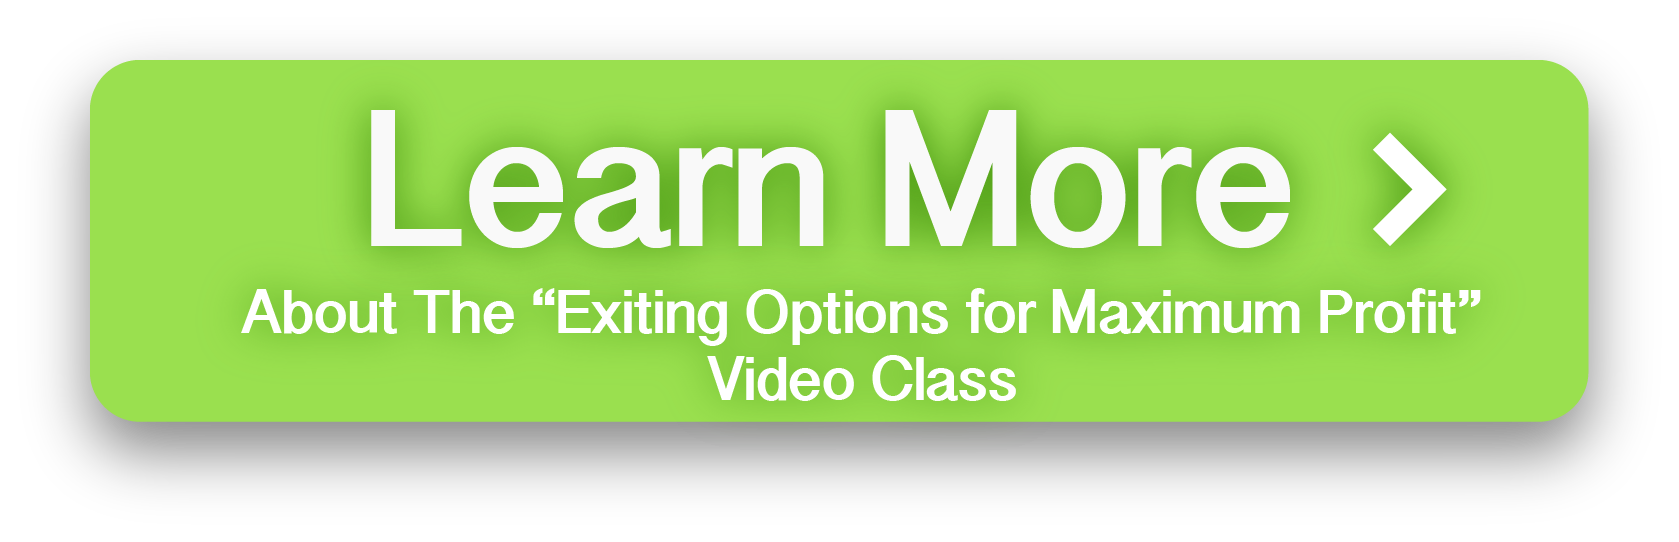 Stock options education videos